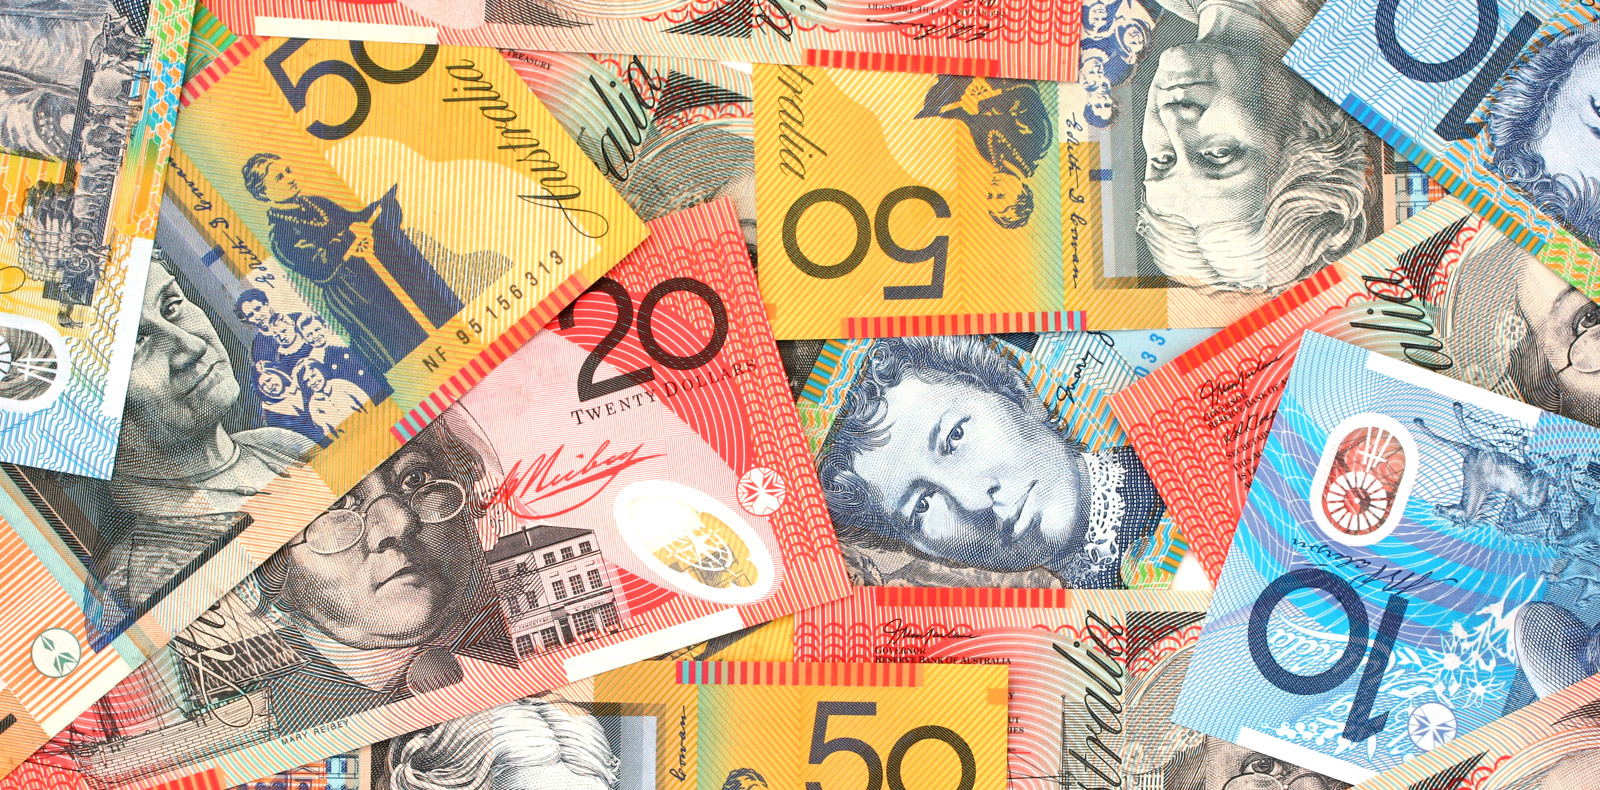 Australian inflation to impact Australian Dollar exchange rates - Foreign Currency Direct